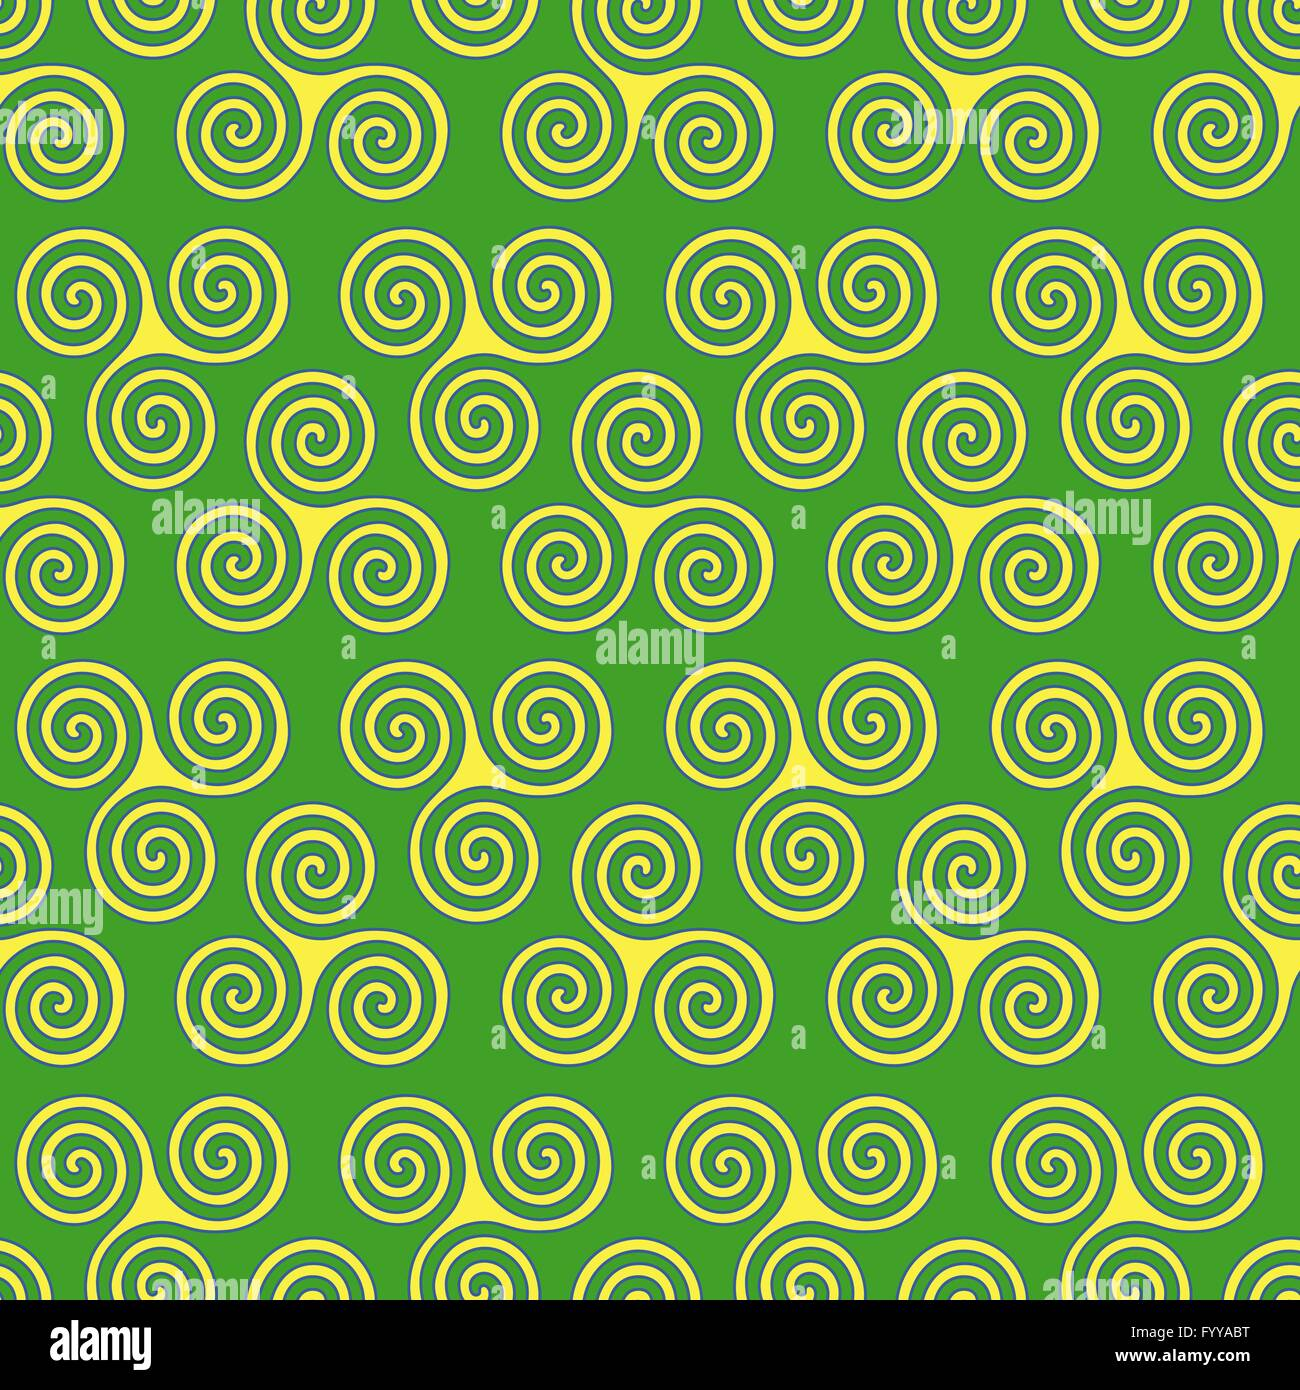 Seamless vector pattern with swirling triple spiral or triskele a seamless vector pattern with swirling triple spiral or triskele a complex ancient celtic symbol shapes in yellow and blue on t buycottarizona Images